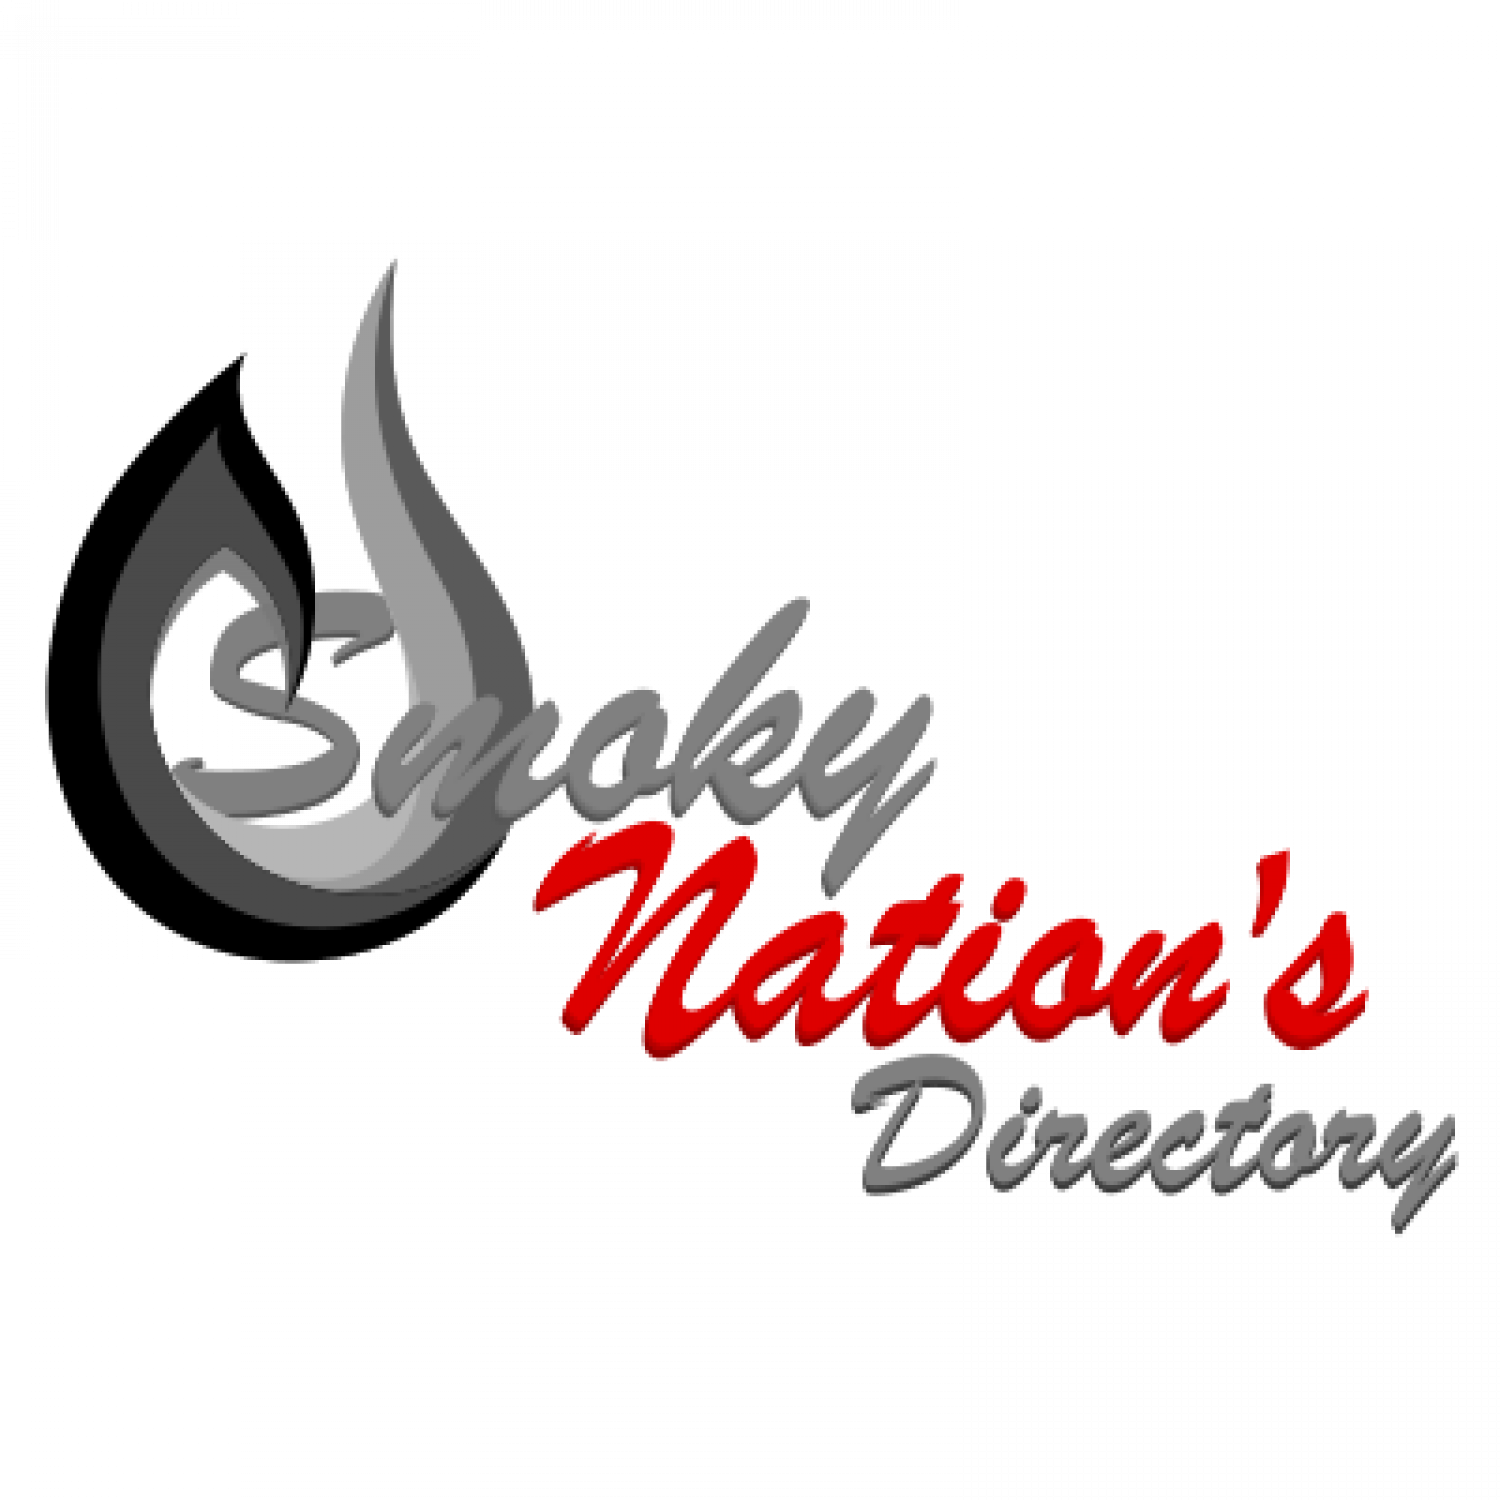 Smoky Nation Directory Infographic